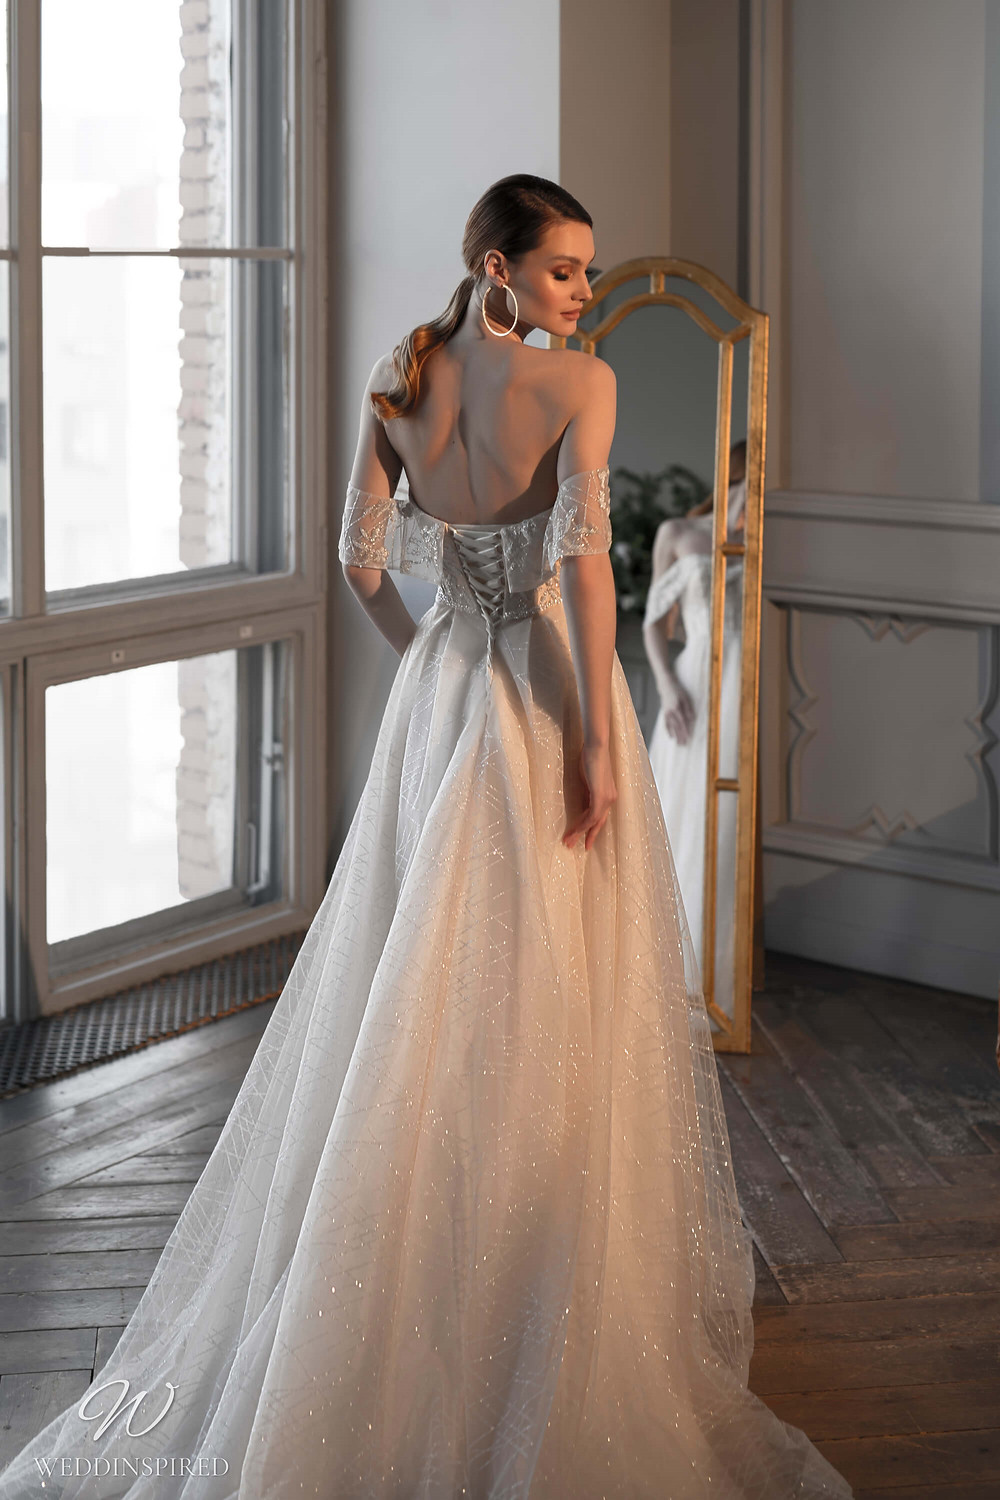 A Naviblue Bridal 2021 sparkly blush mesh off the shoulder A-line wedding dress with a corset top